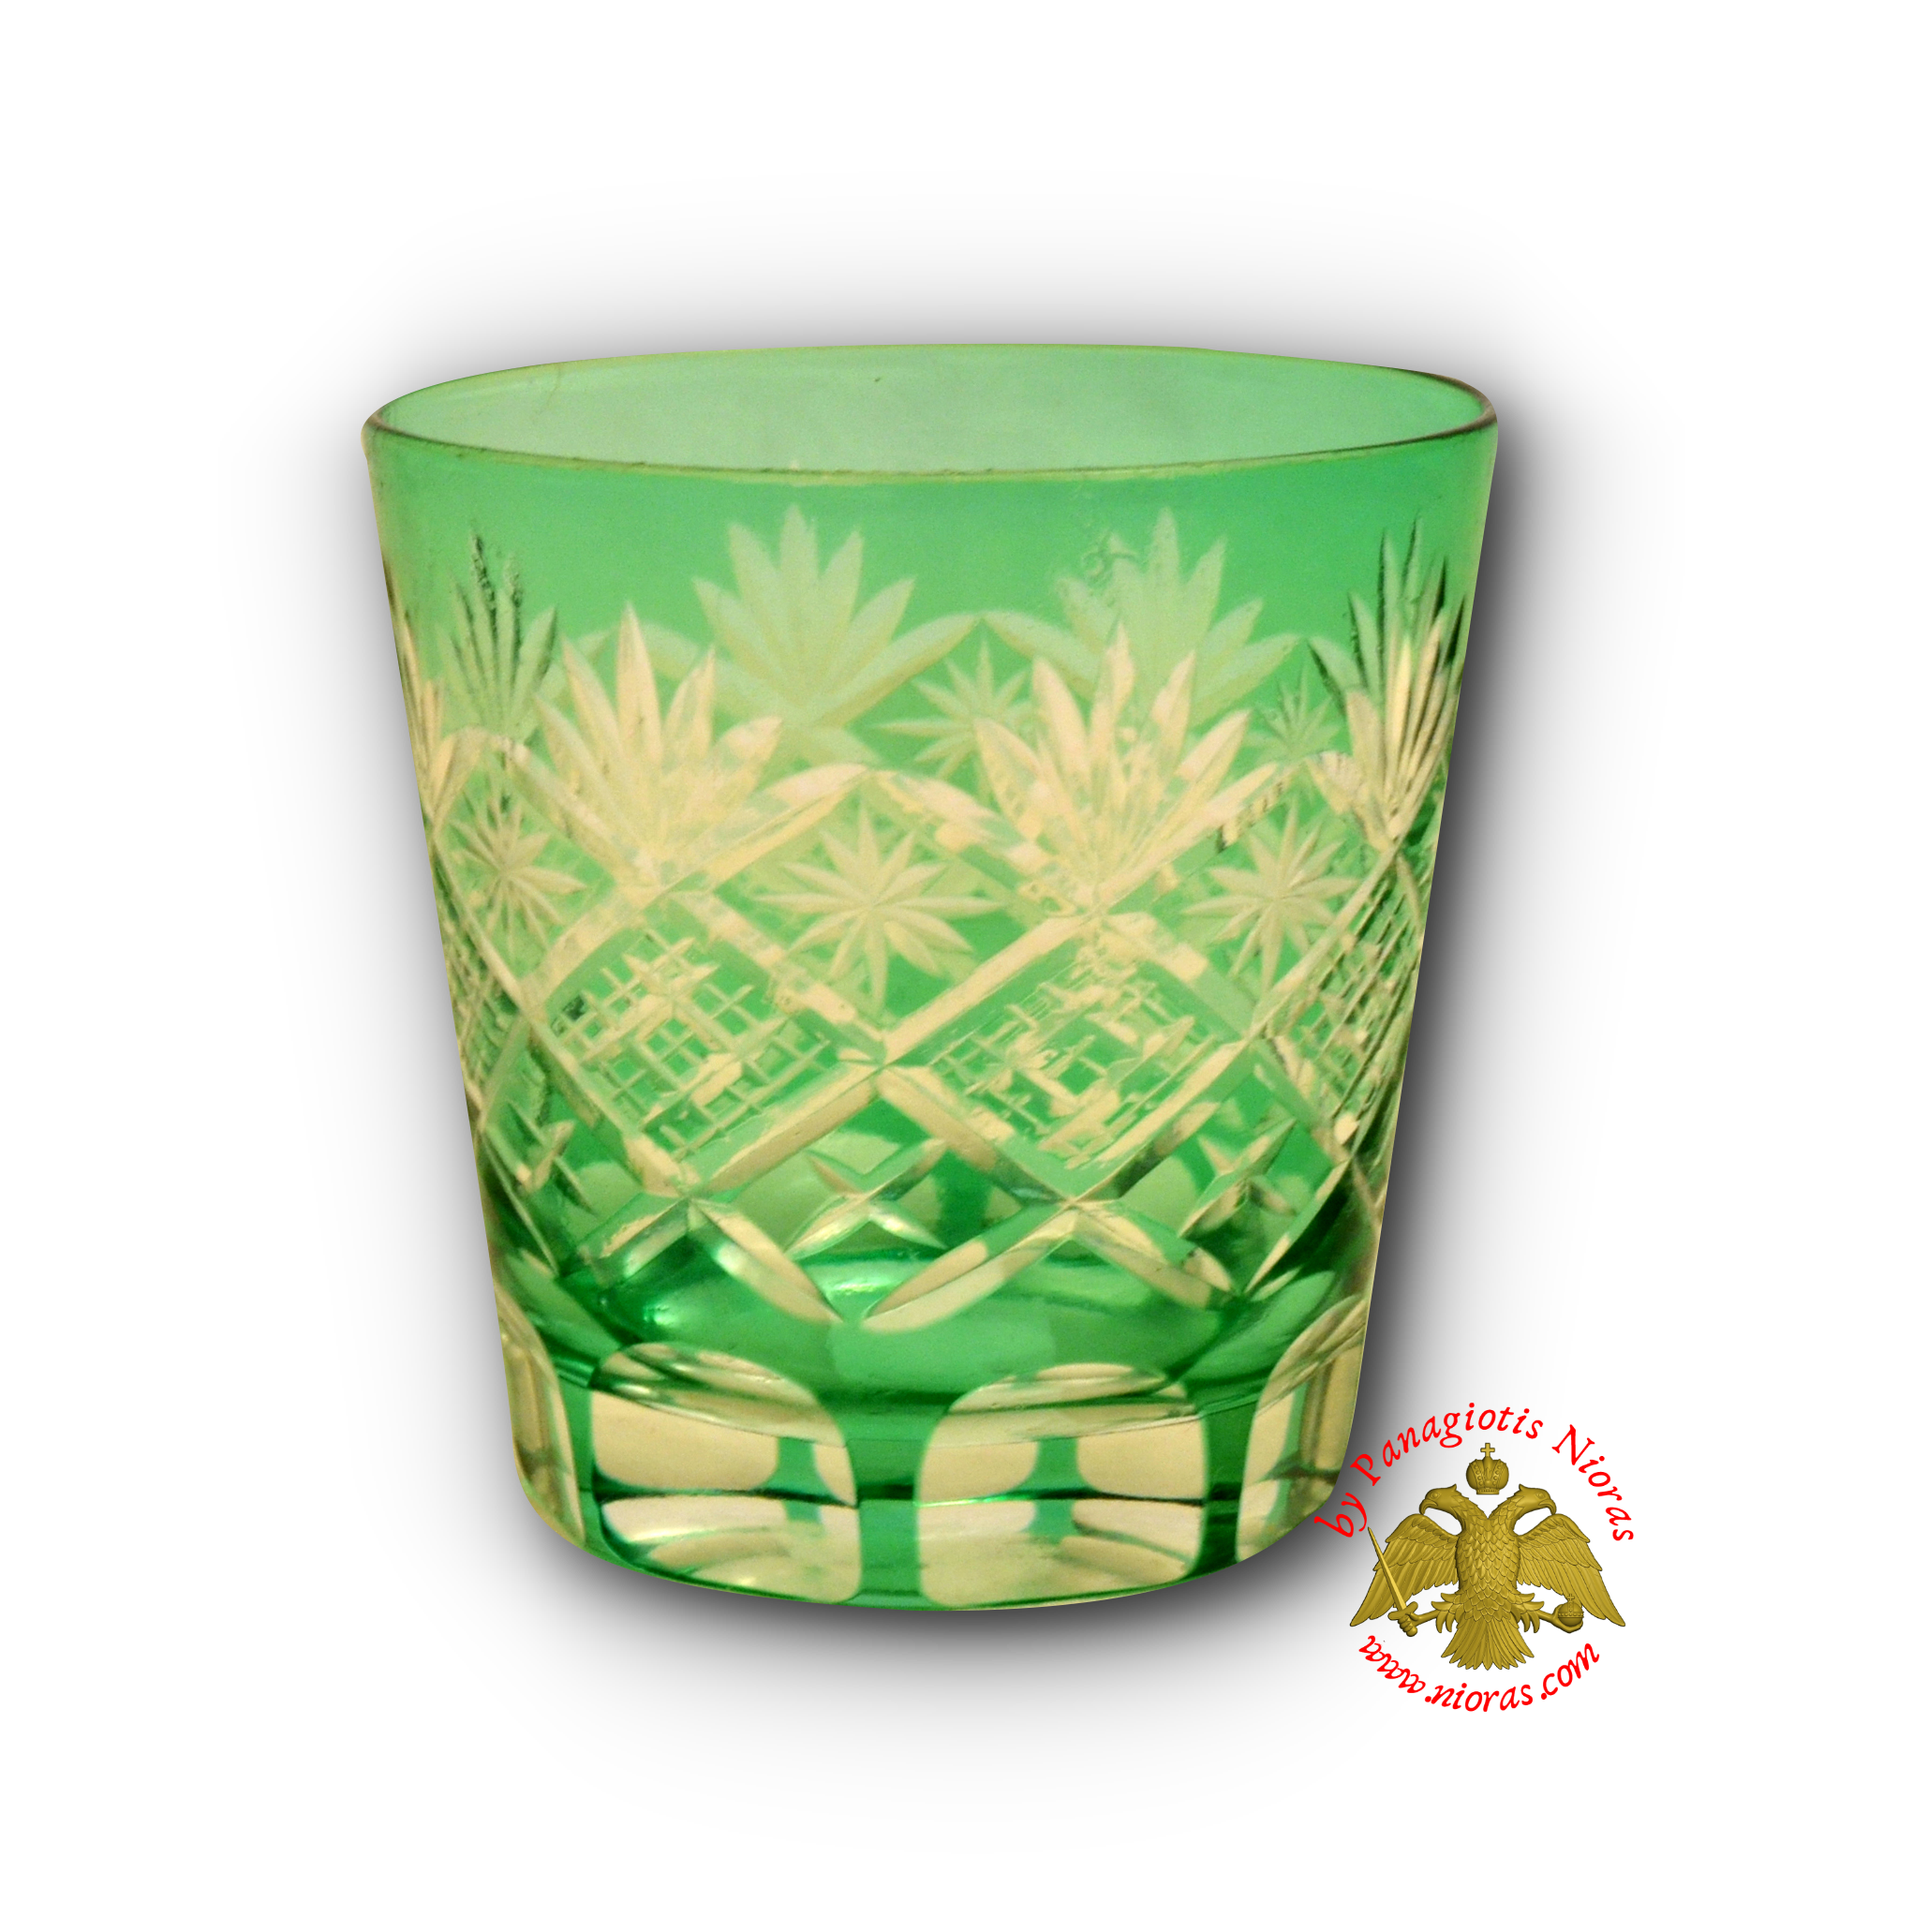 Romanian Orthodox Replacement Glass Cut Design Green SET of 2